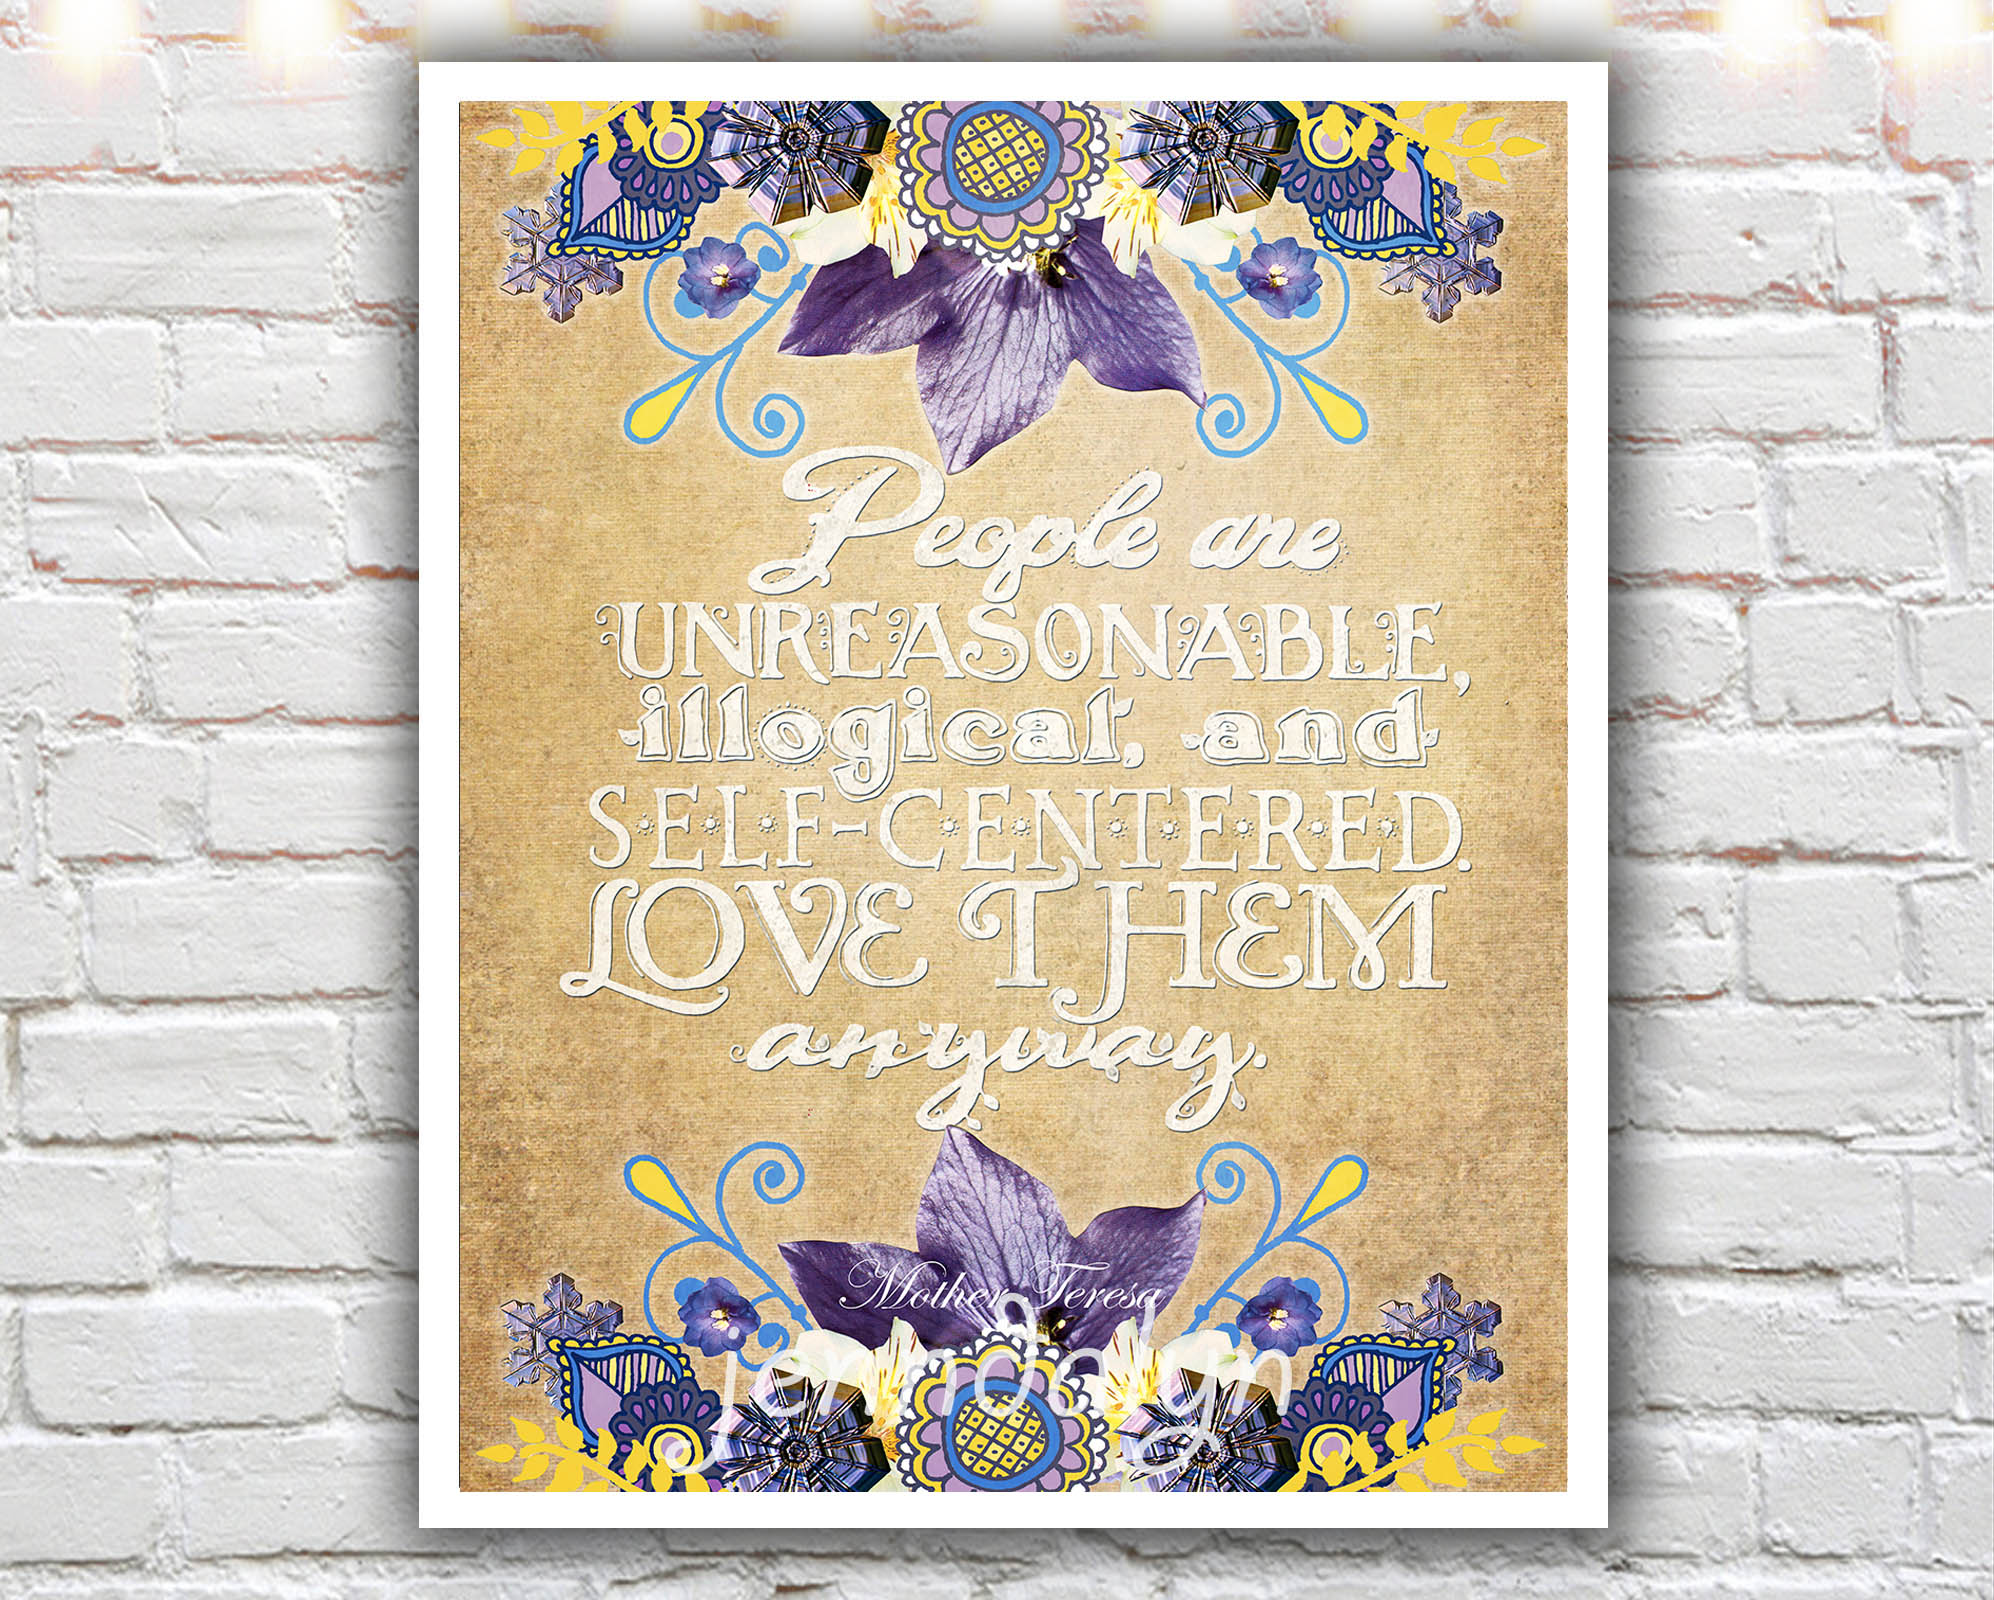 Mother Teresa Quotes Love Them Anyway Love Them Anyway Ii  11 X 14 Paper Print Mother Teresa Quote